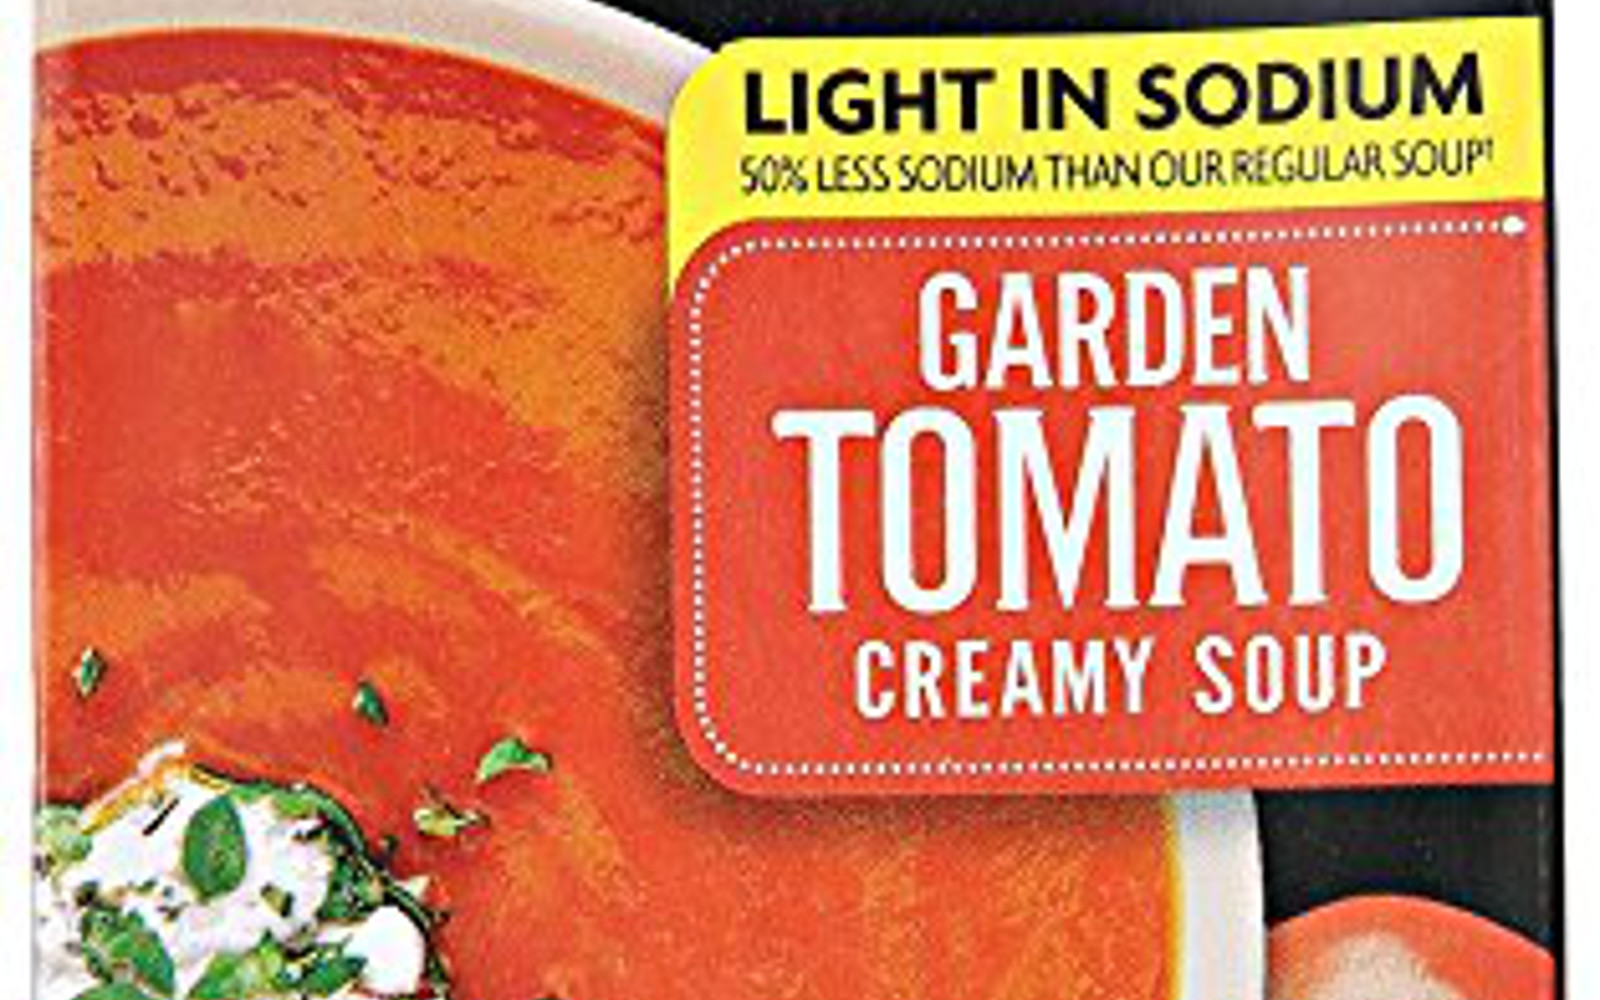 Healthy Amazon Soup Finds for the Vegan College Student | Vegan  Imagine Organic Soup, Less Sodium Creamy Garden Tomato, 32 Ounce